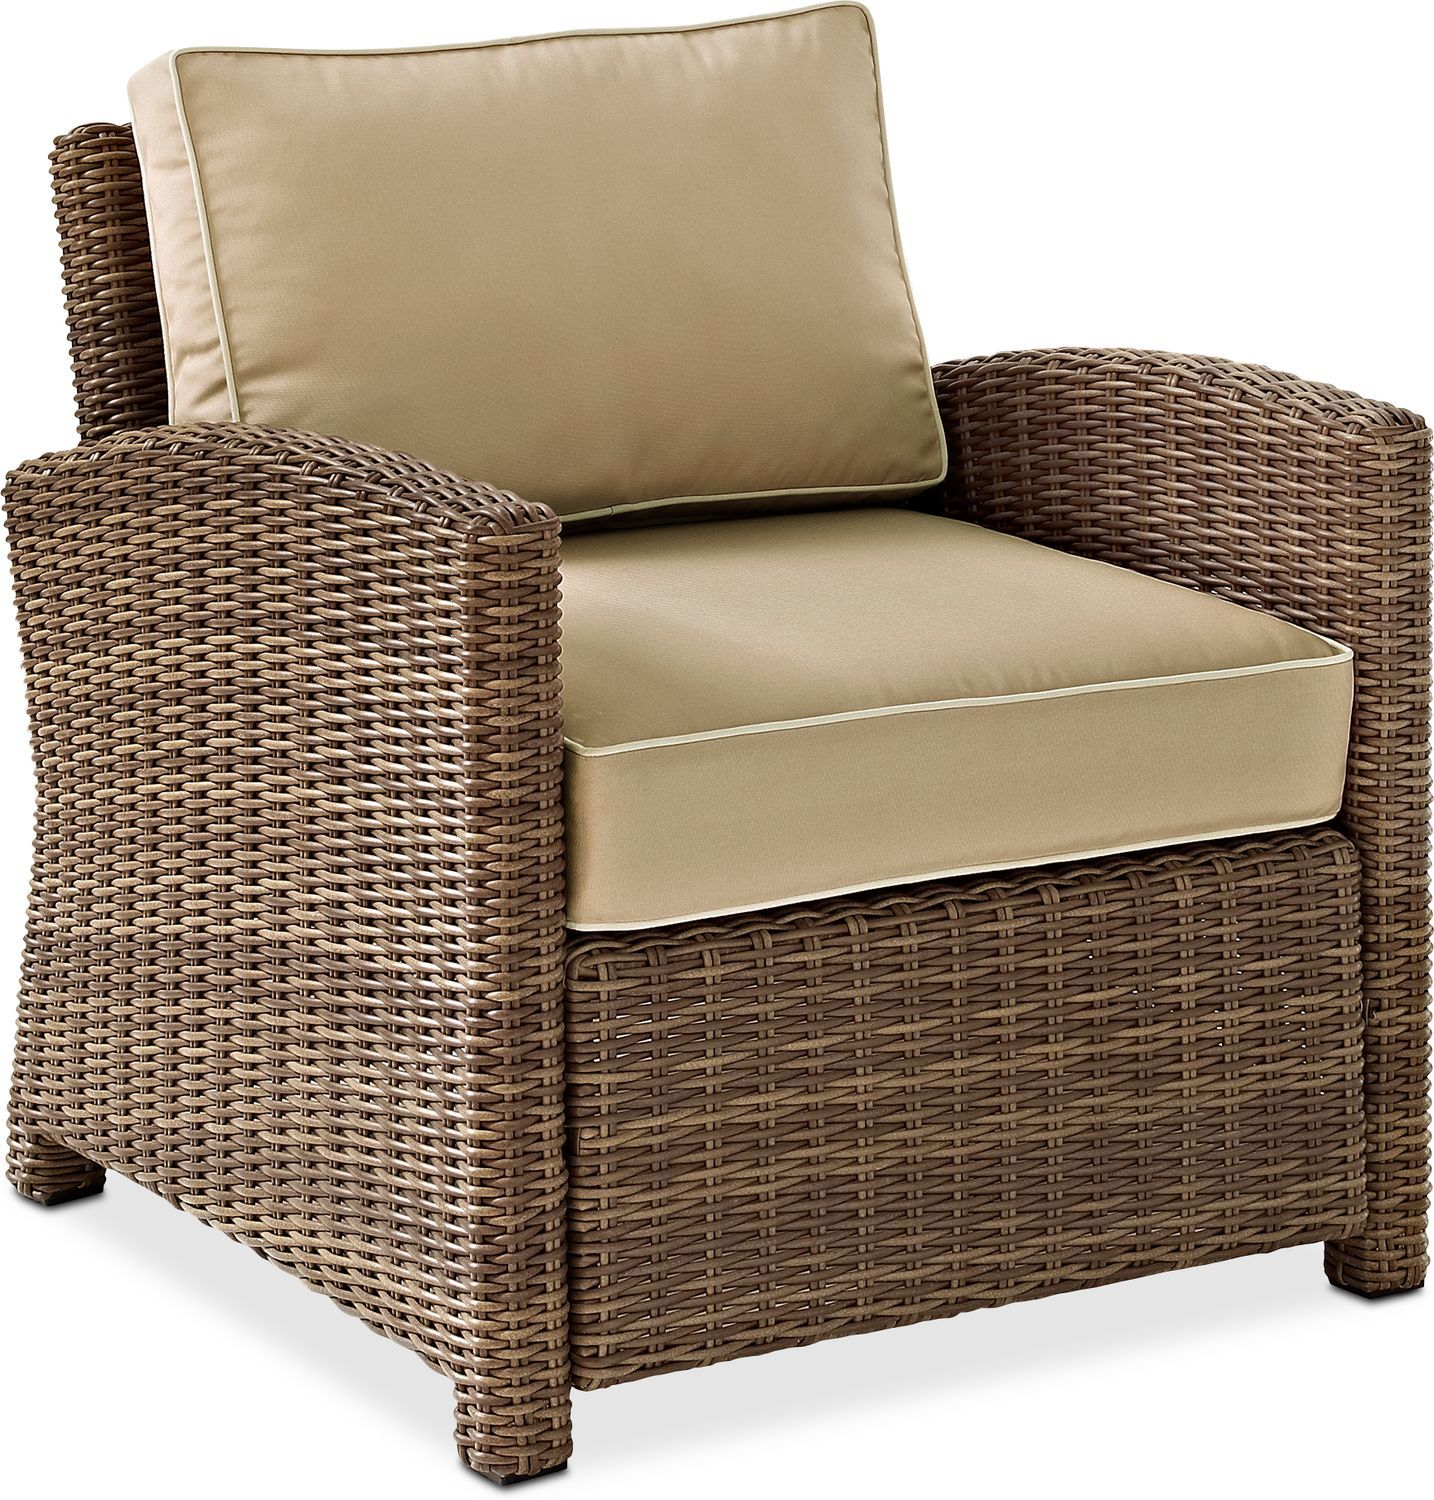 Intricate Appeal What Promises To Be The Go To Seating Of Your Deck Or Patio The Destin Outdoor Chair Is Wicker Patio Chairs Outdoor Armchair Outdoor Wicker